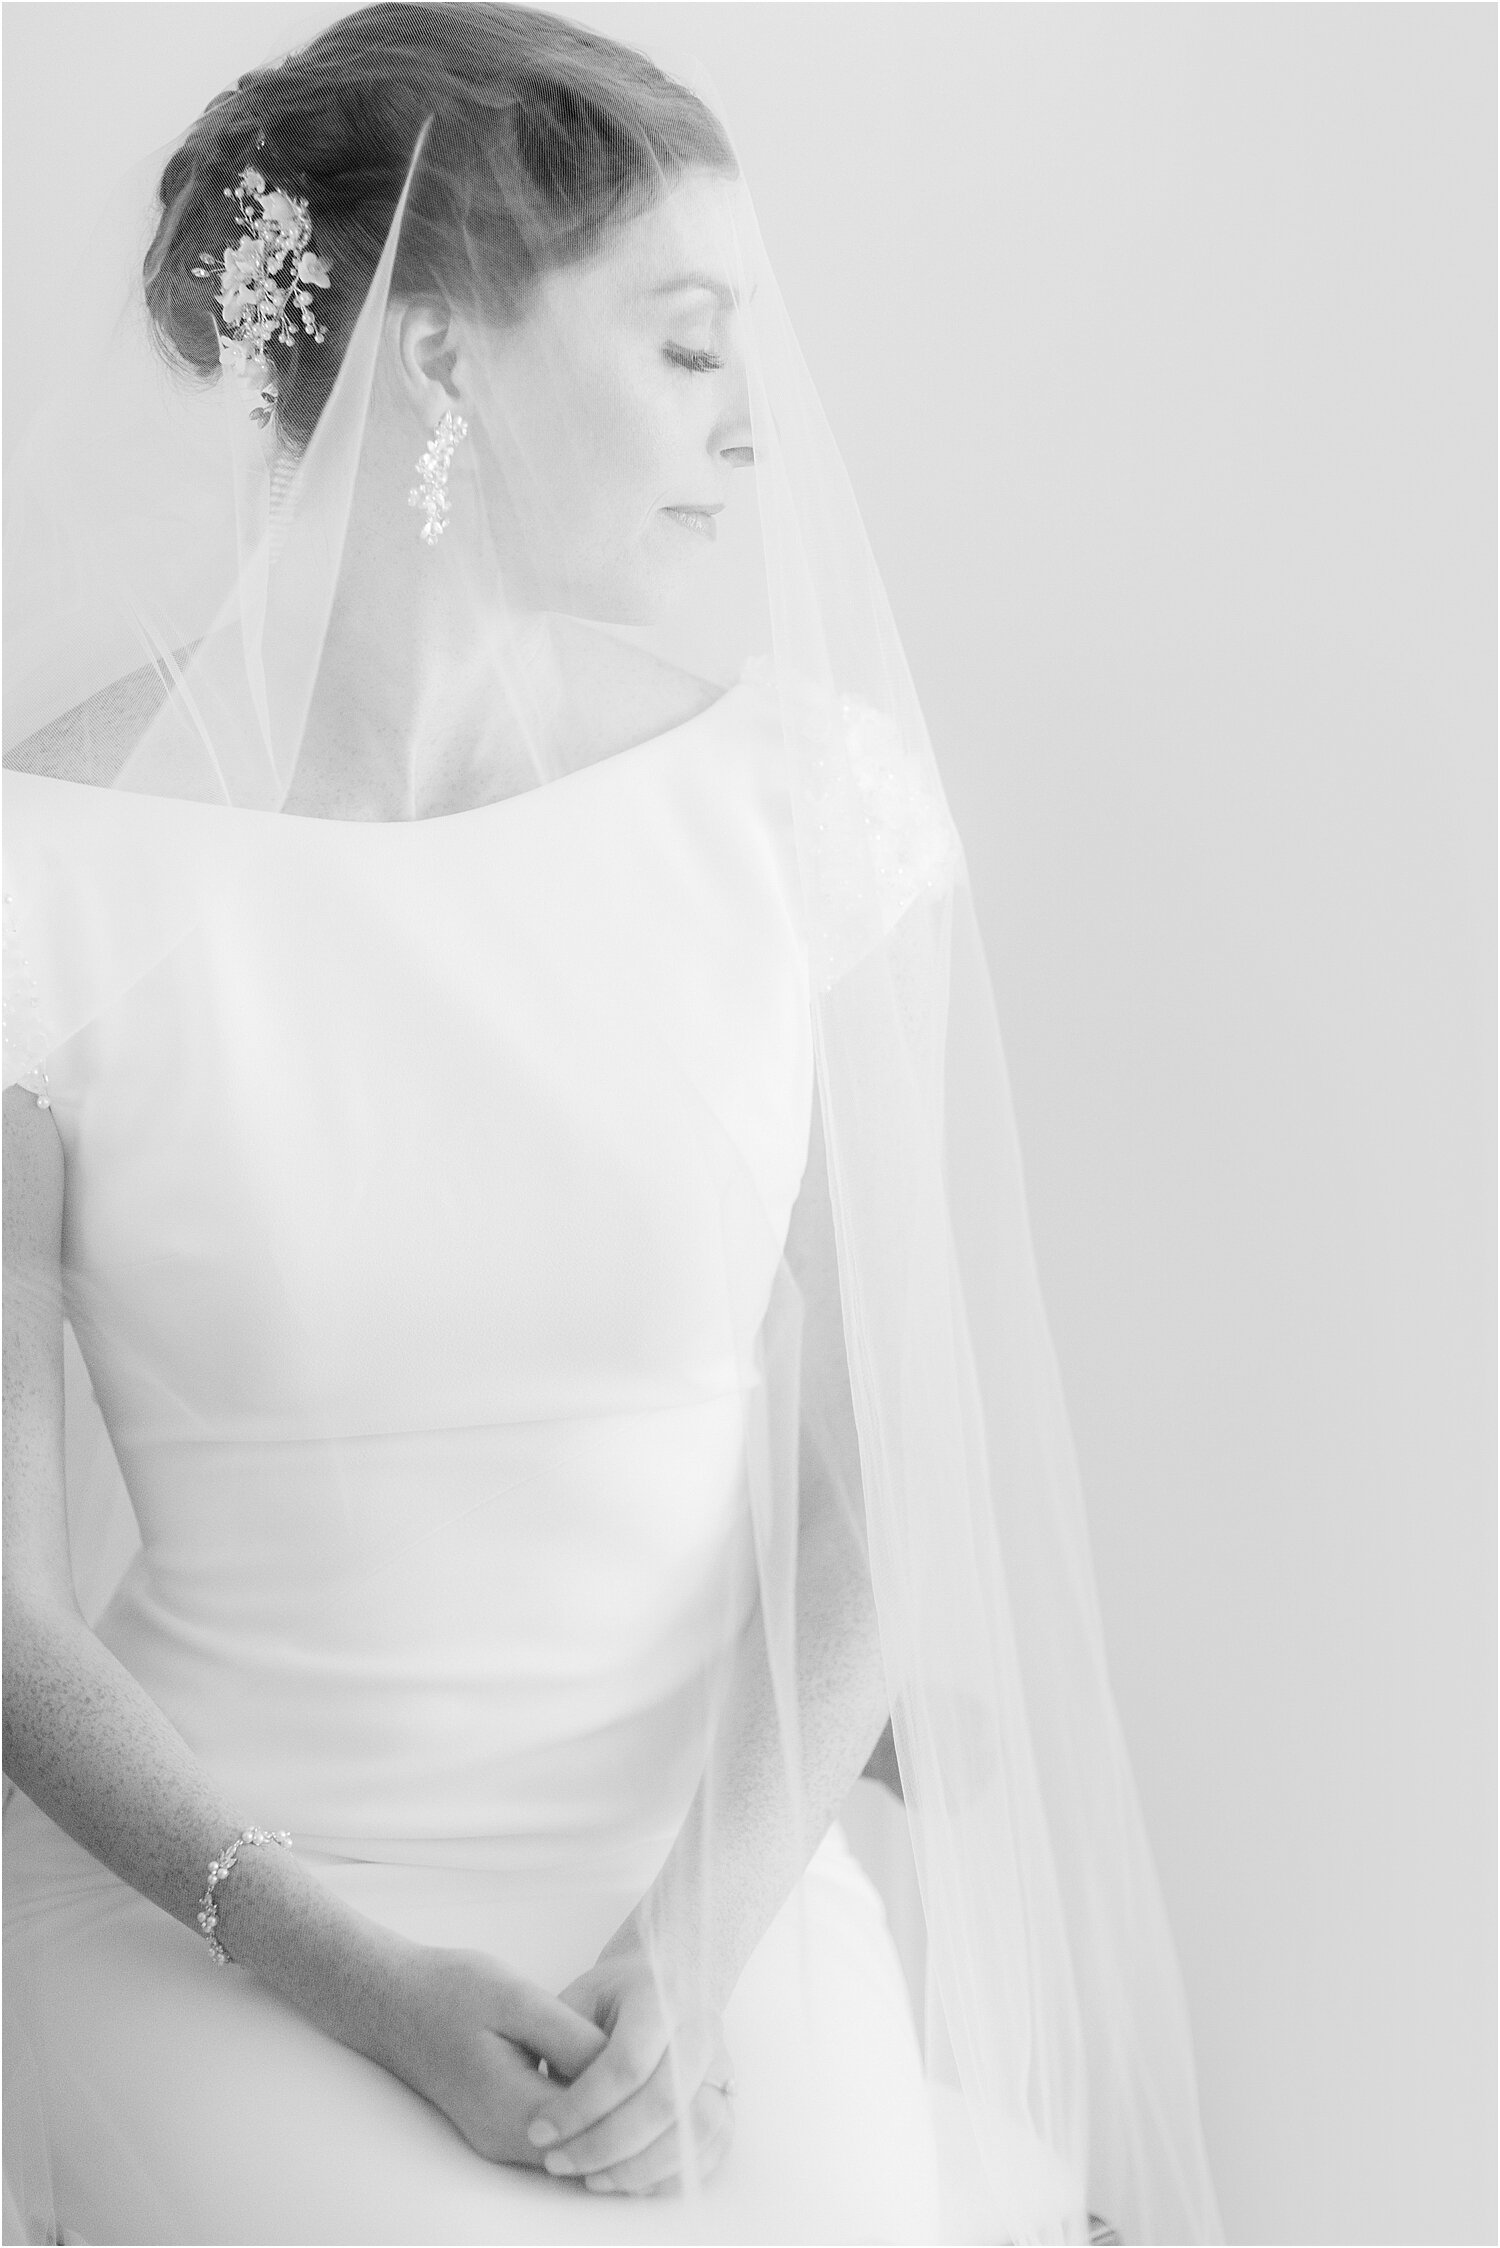 classic bridal portrait in black and white